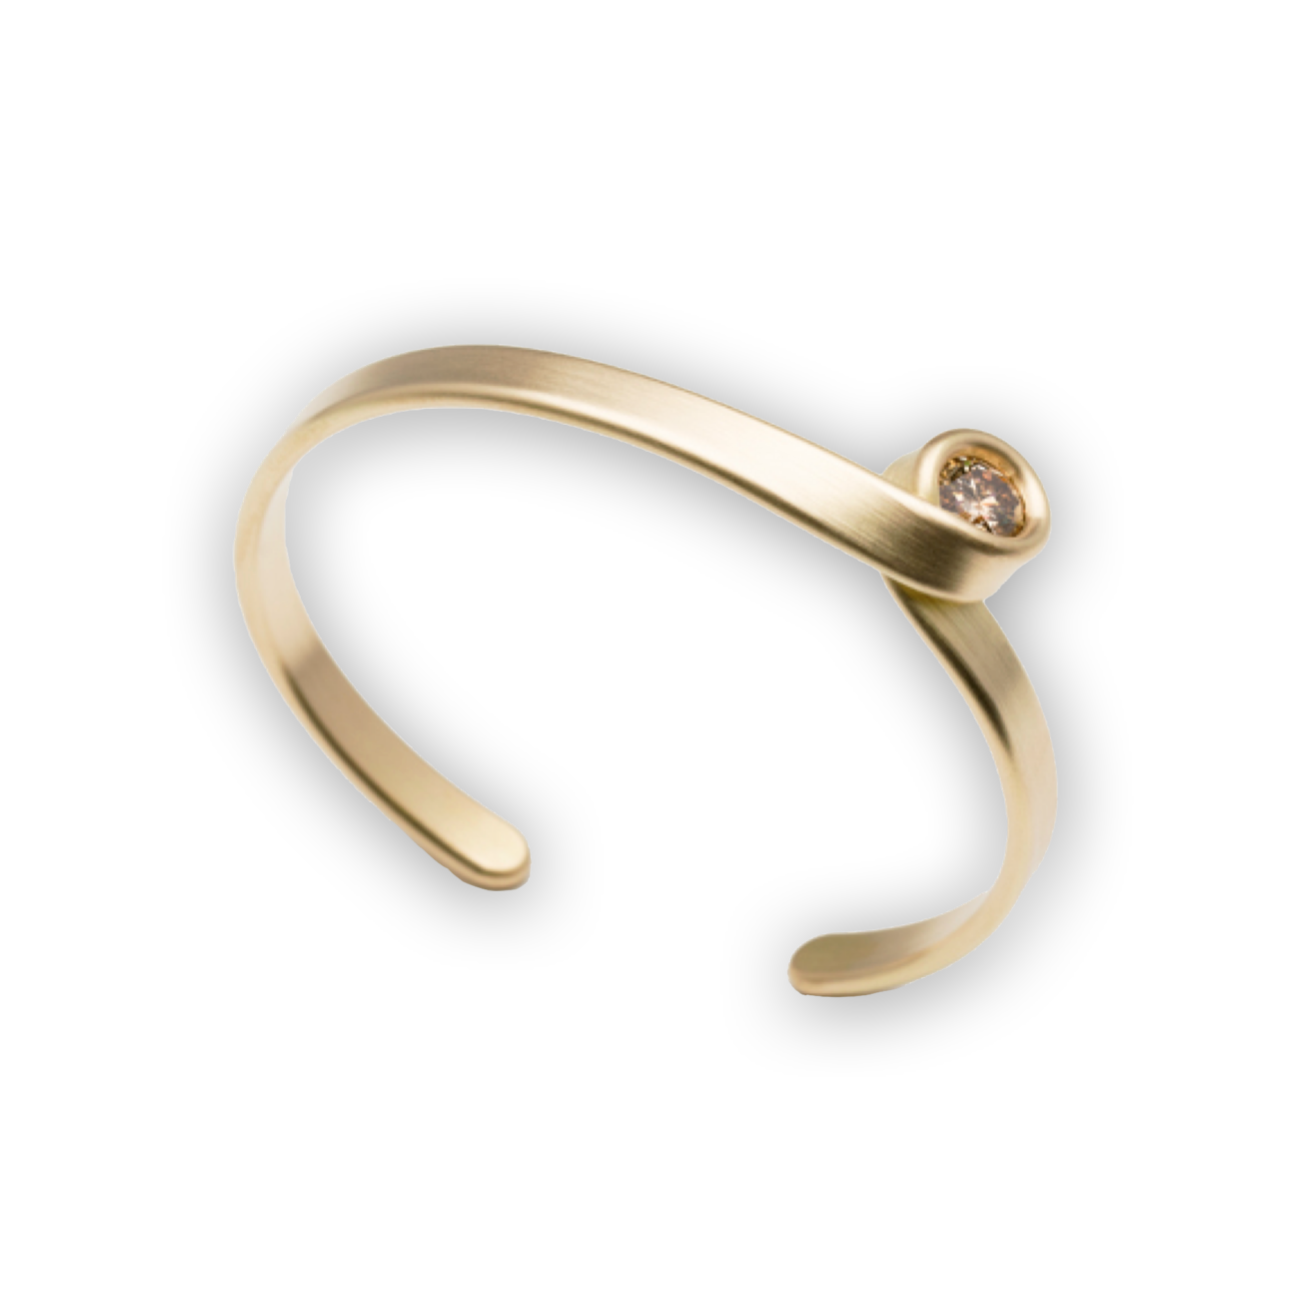 Leen Heyne - Gold & Diamond Loop Cuff Bracelet - ORRO Contemporary Jewellery Glasgow